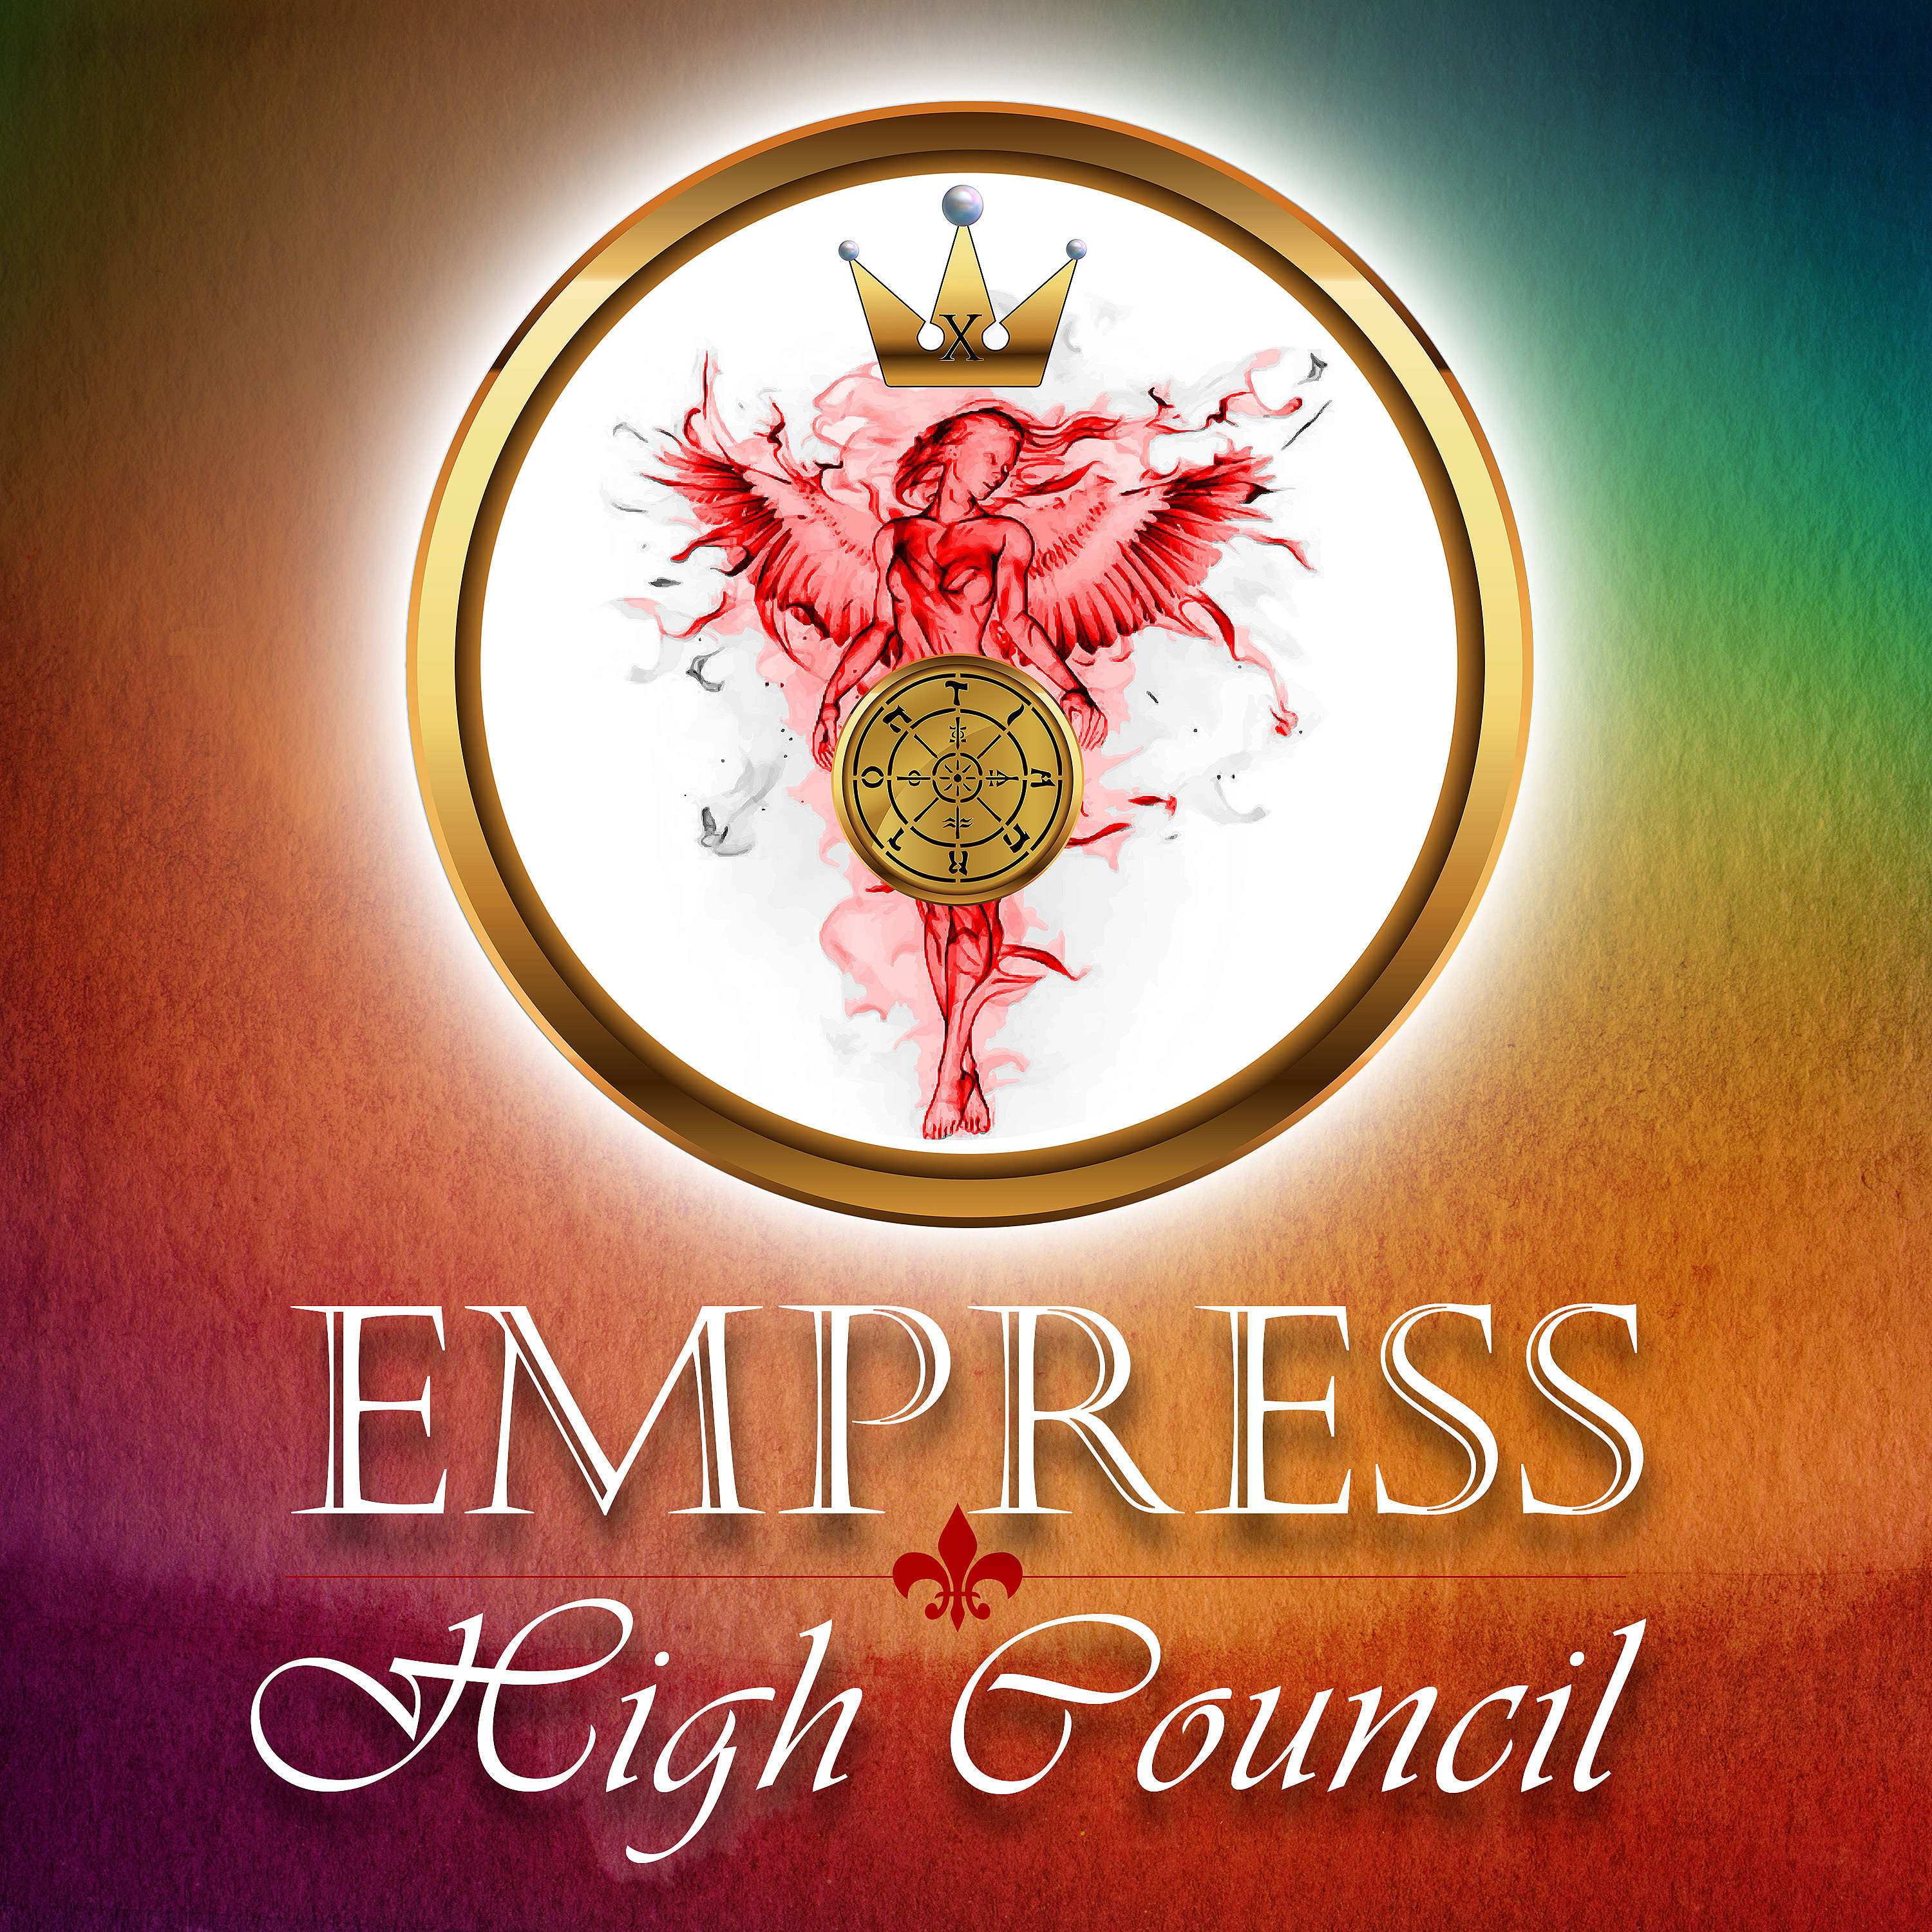 Empress High Council: Spirituality and Inspired Creativity